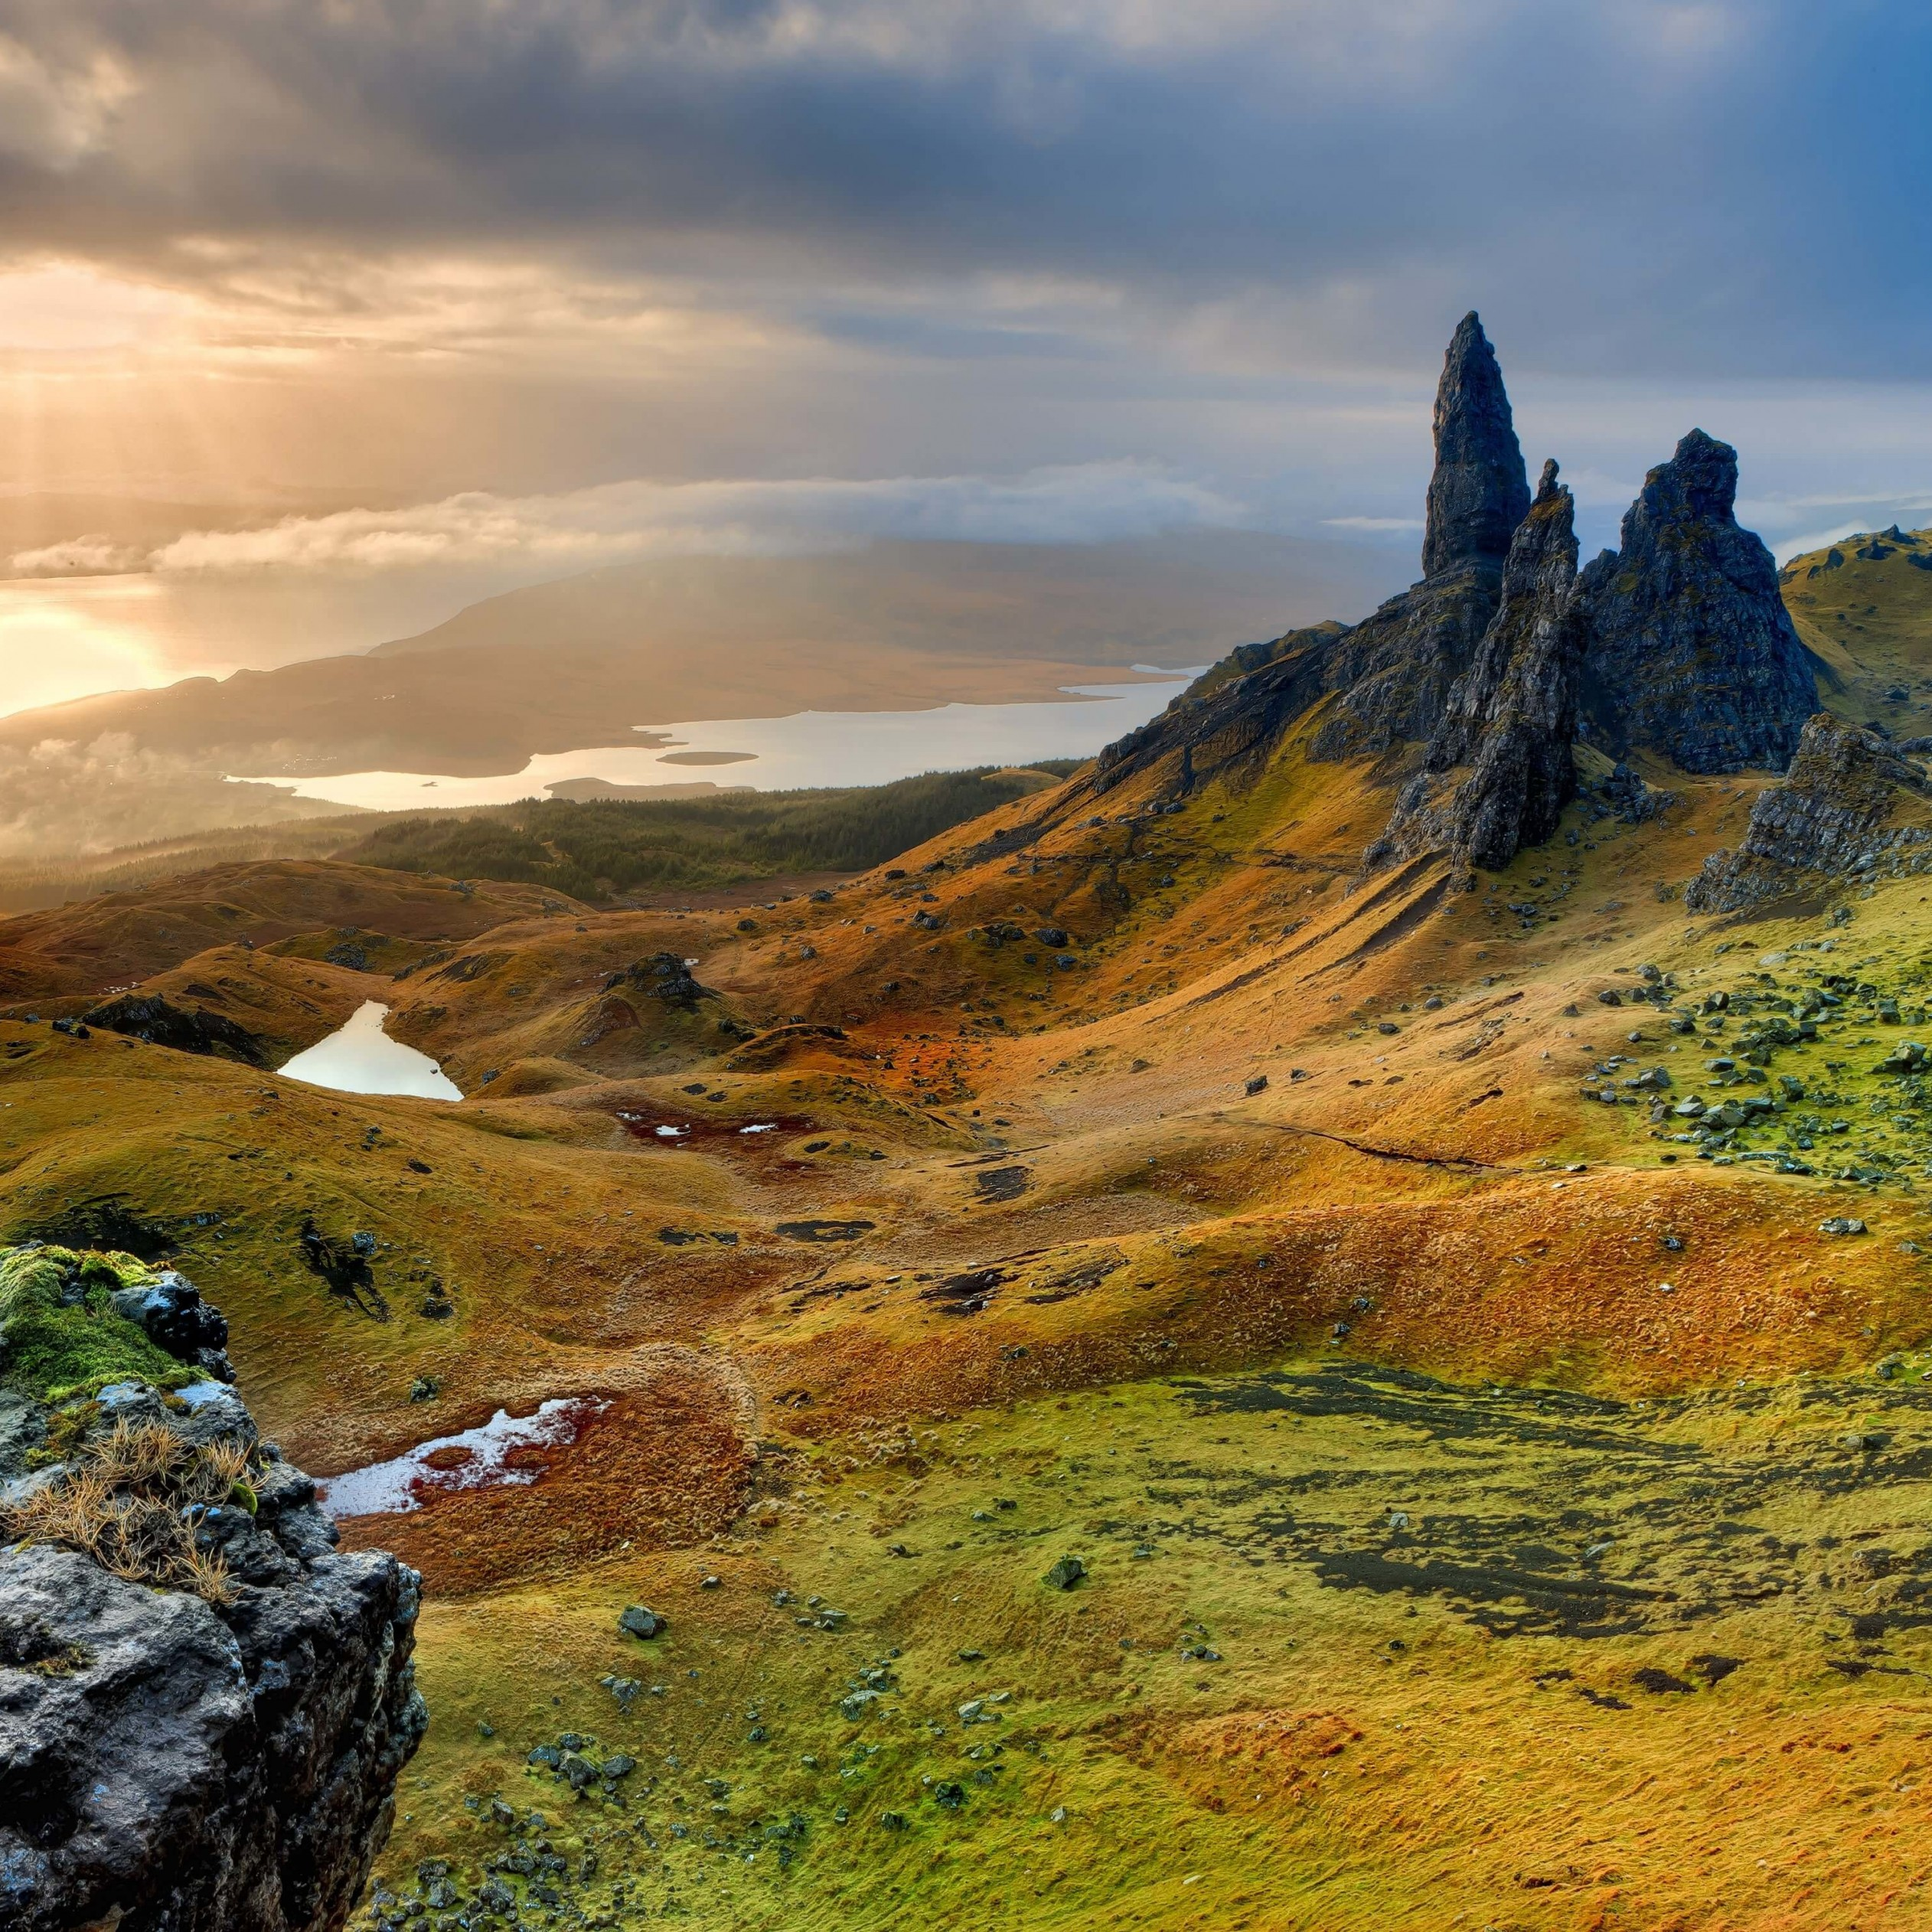 The Old Man of Storr, Isle of Skye, Scotland Wallpaper for Apple iPad Air